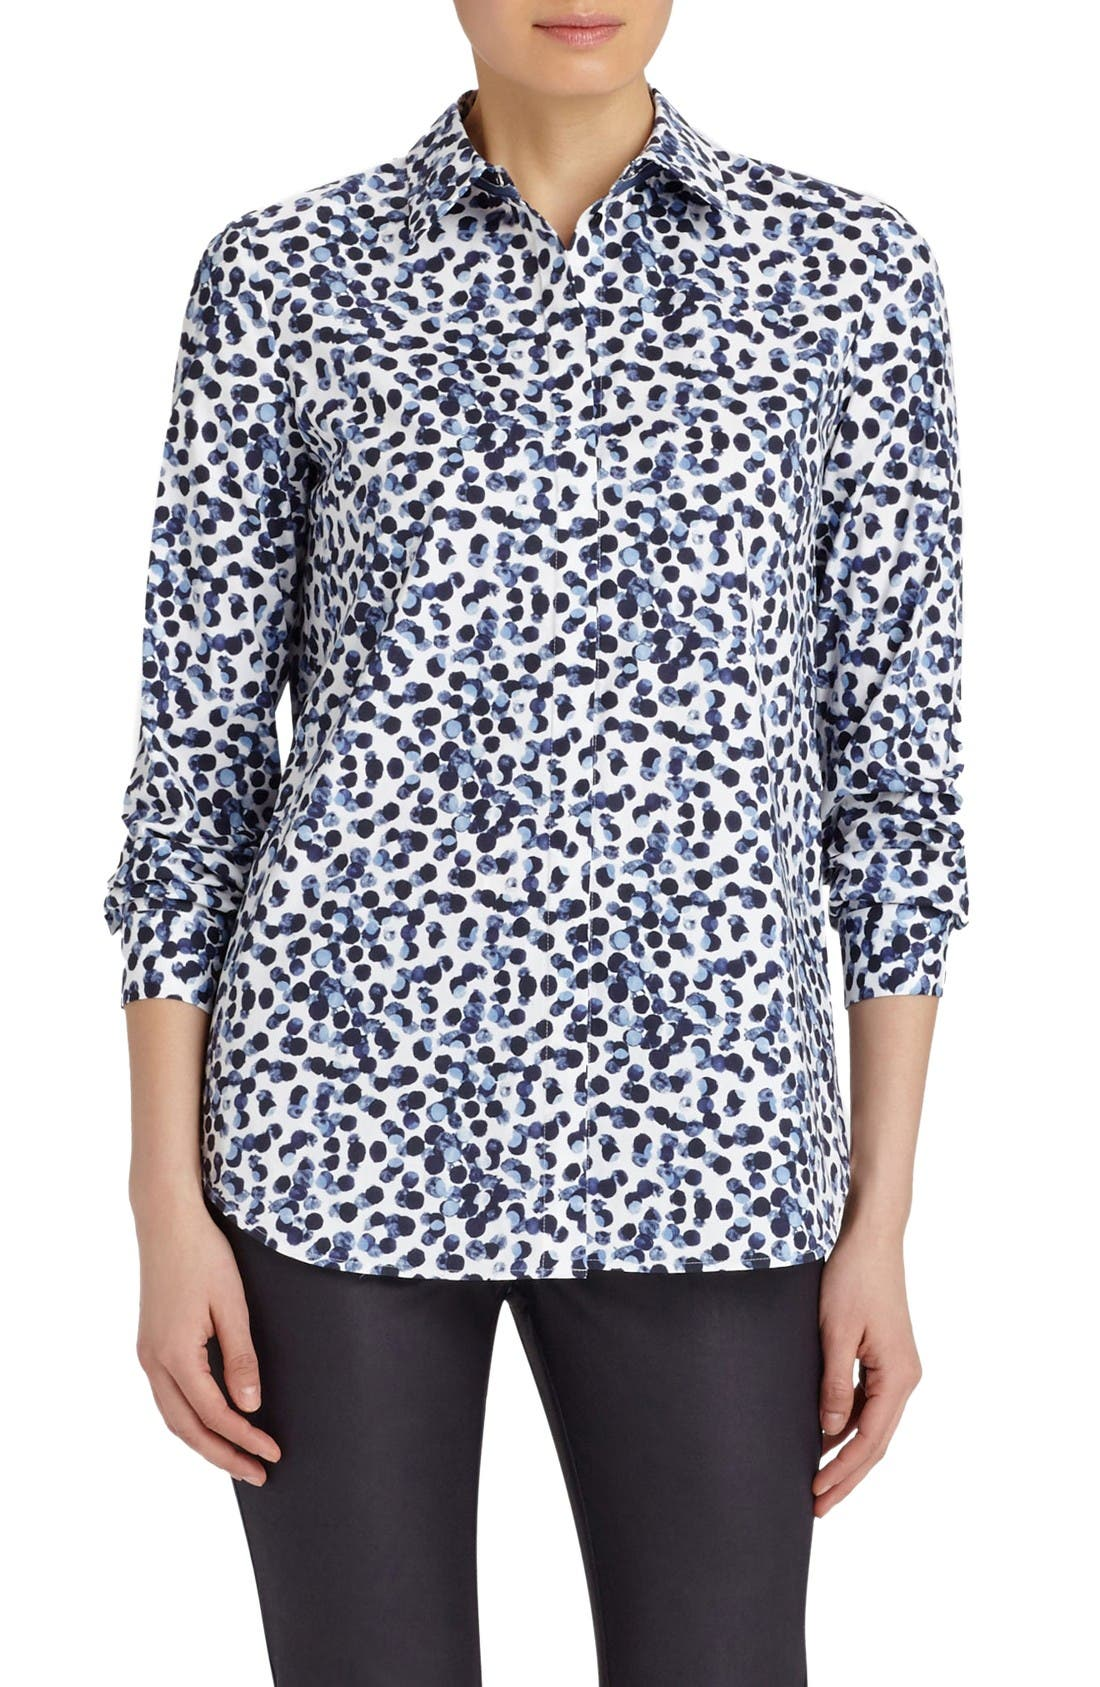 Lafayette 148 New York Brody Print Stretch Cotton Blouse